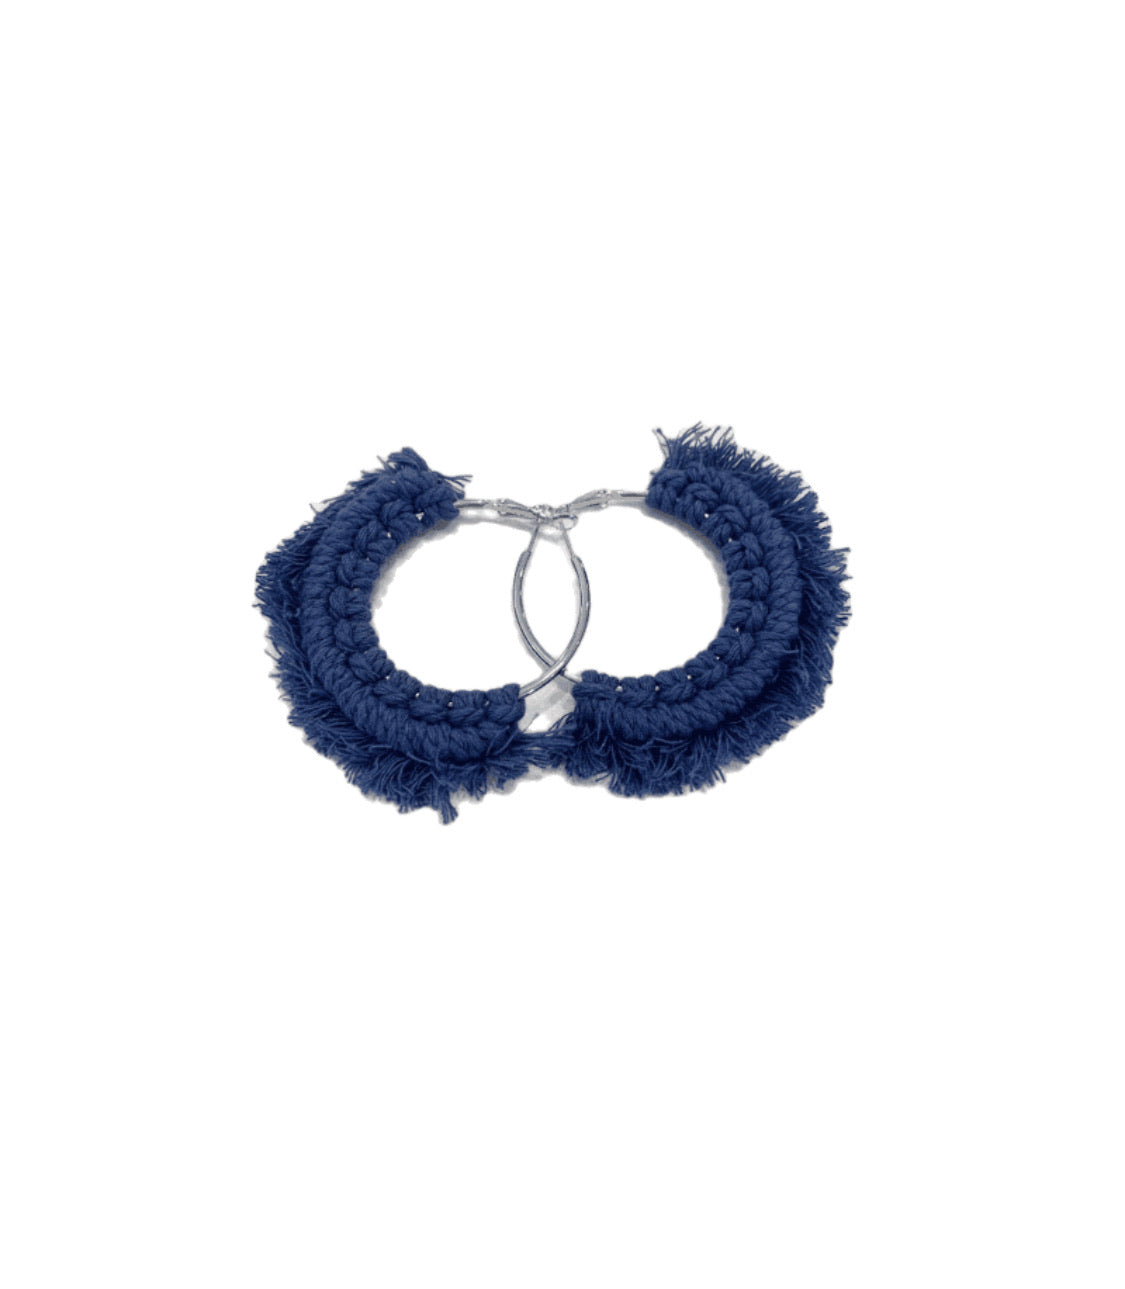 Blue Crochet Hoop Earrings